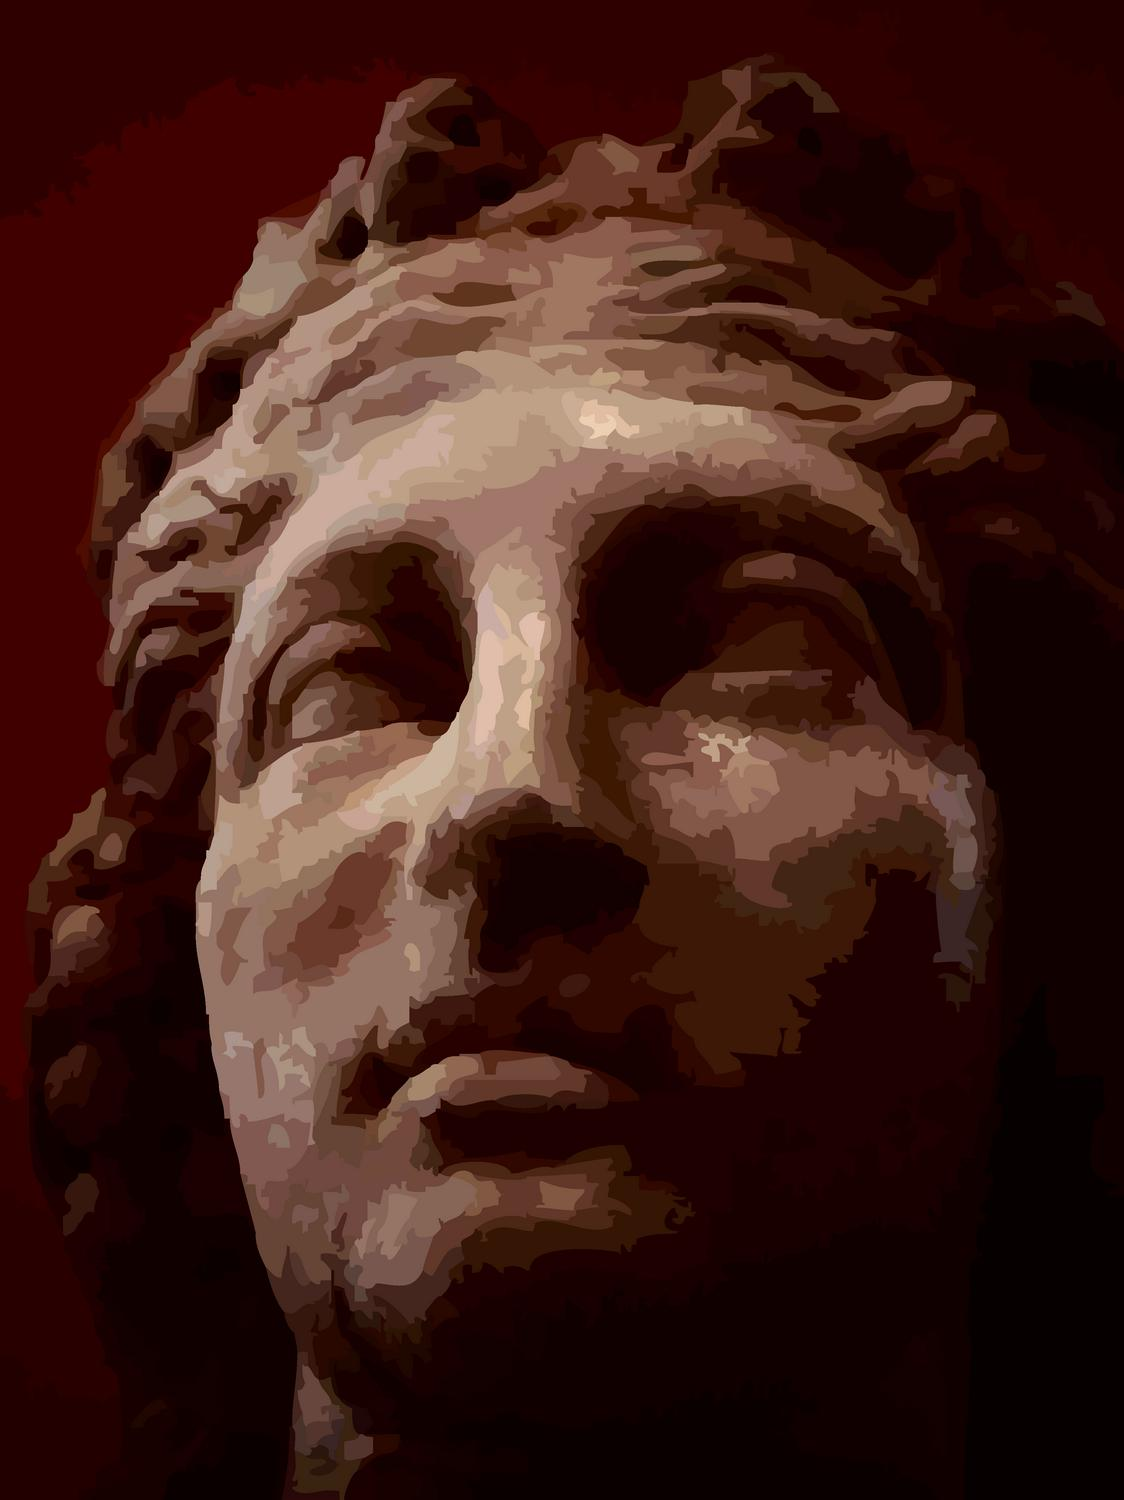 - A lovely face from the National Archaeological Museum of Spain. - A trip to Spain by Tony Karp - Madrid -Toledo - Manzanares - Avila Manzanares - - - art  - photography - by Tony Karp